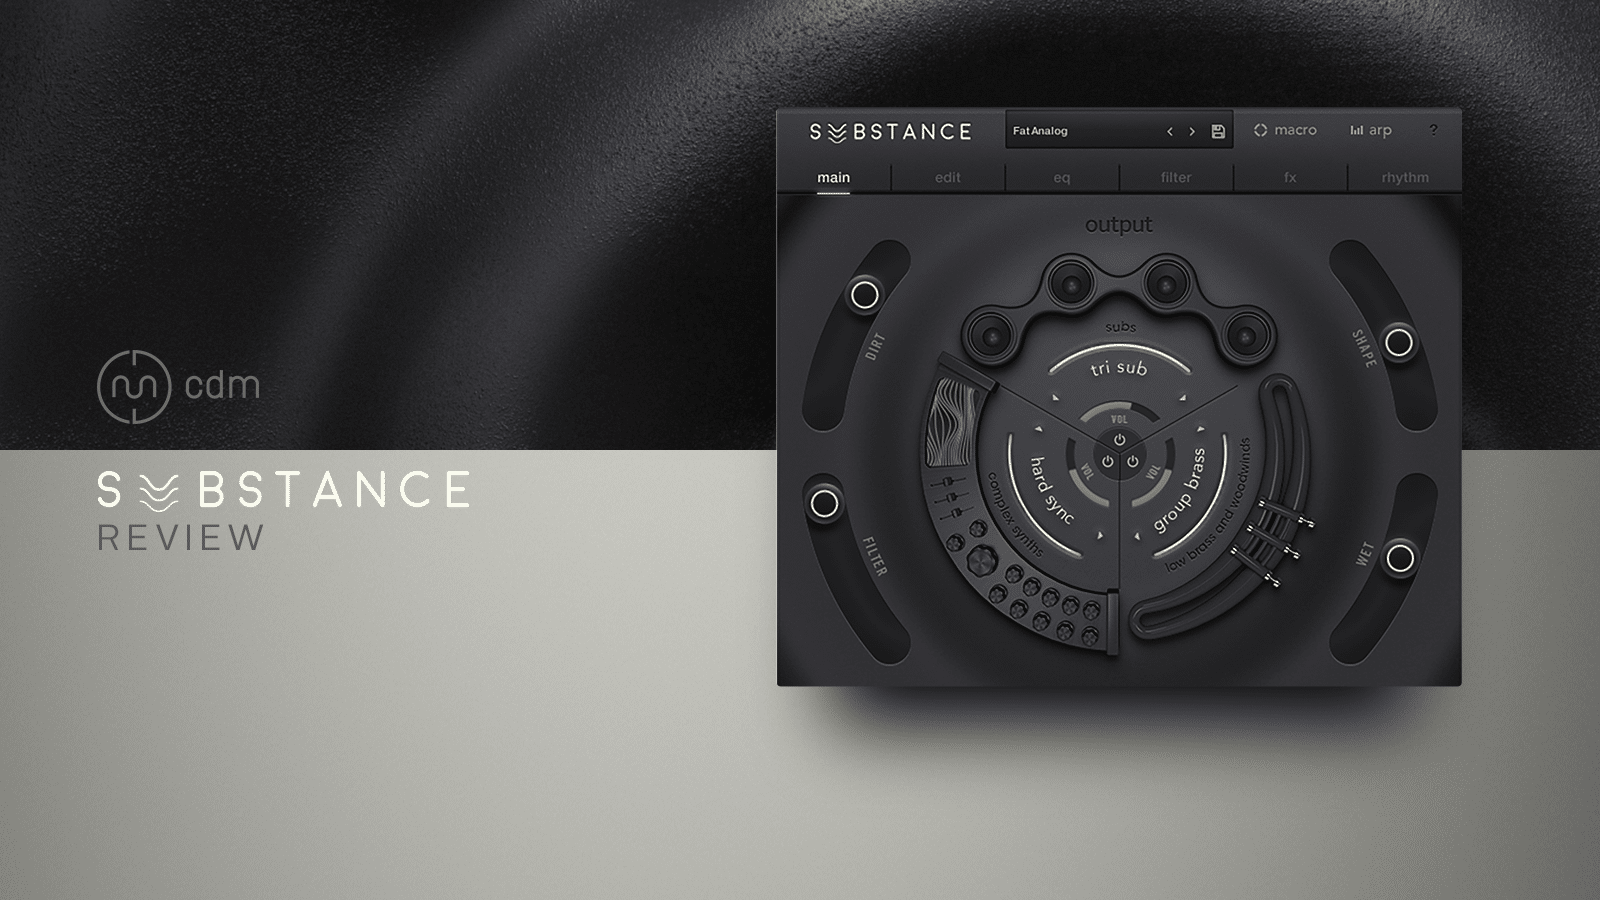 substance_blog_review_2-1